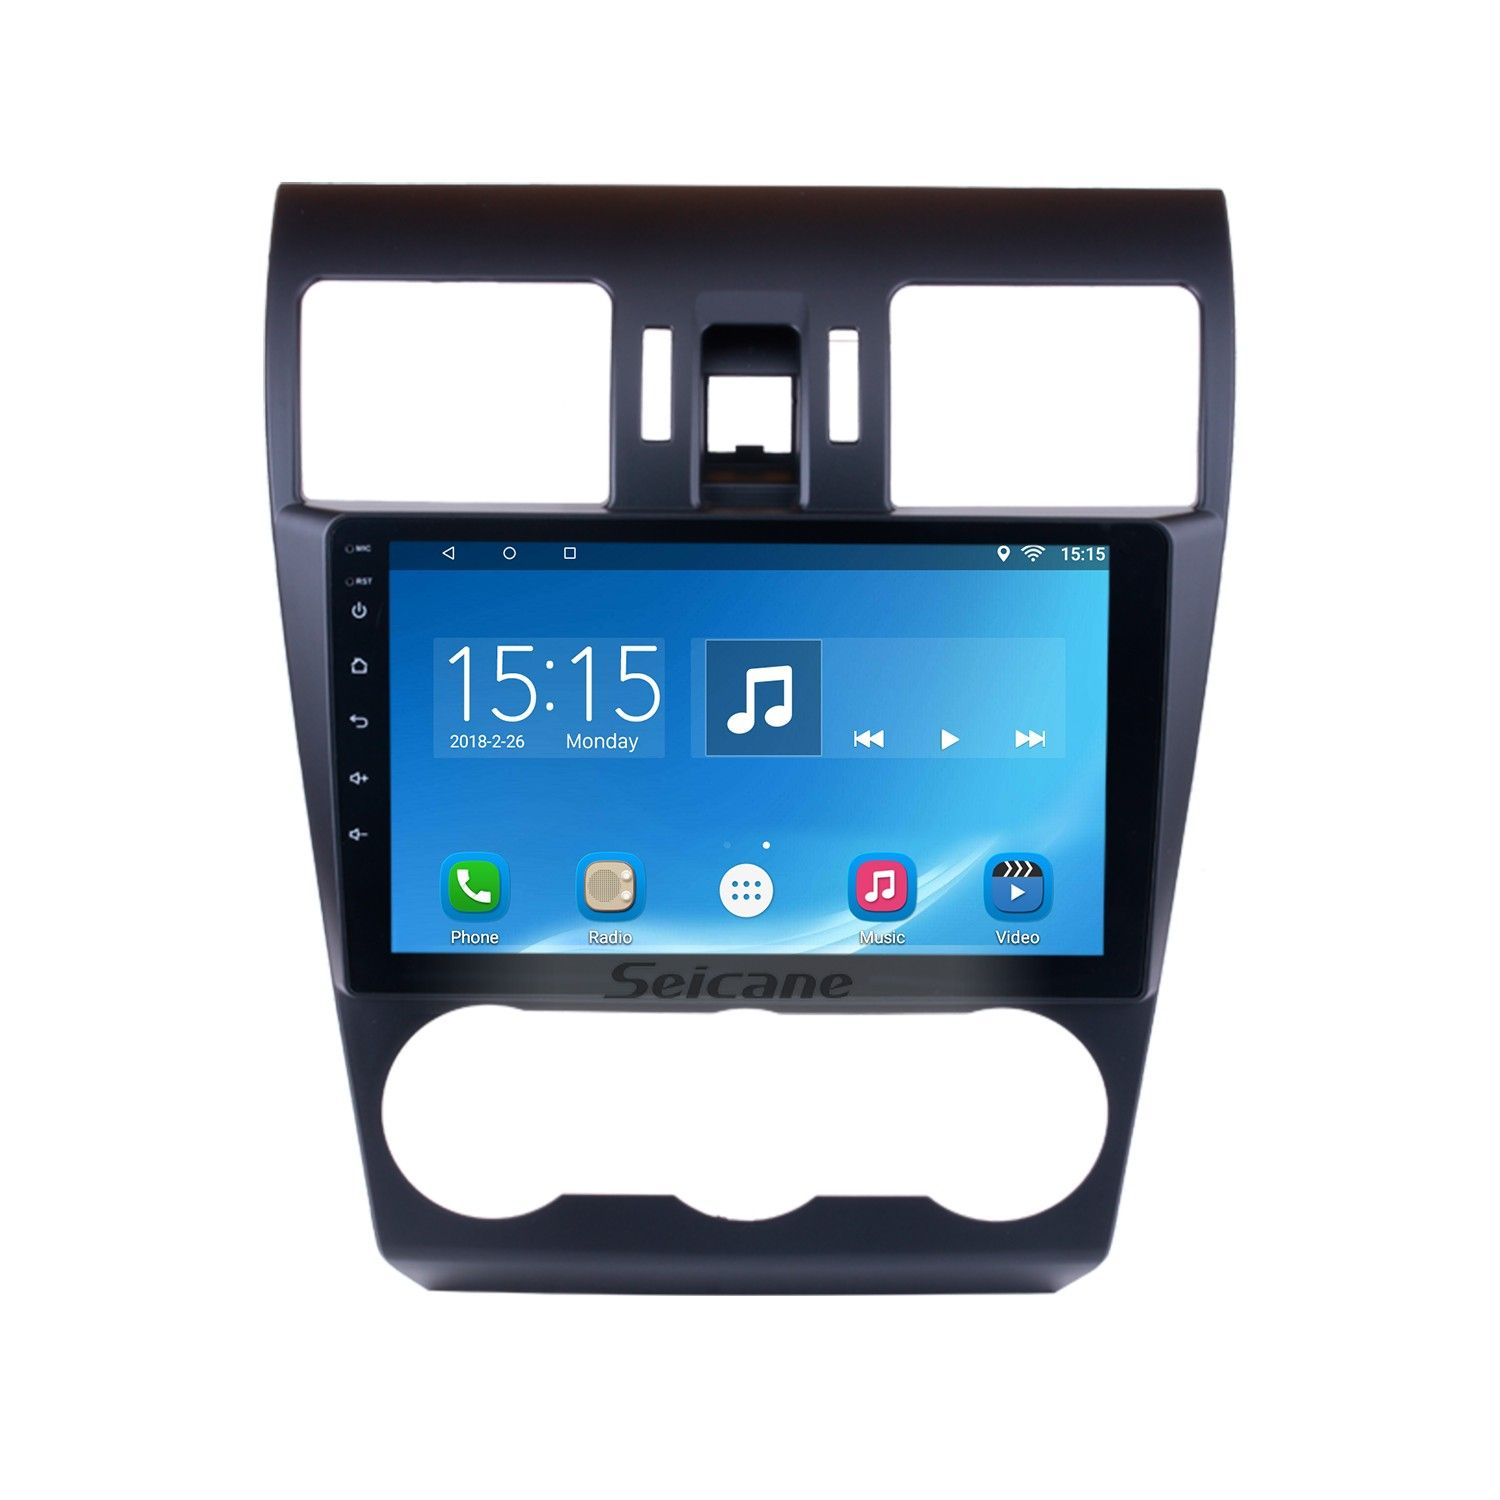 seicane 9 inch 2015 subaru forester android 6 0 radio gps navigation system [ 1500 x 1500 Pixel ]